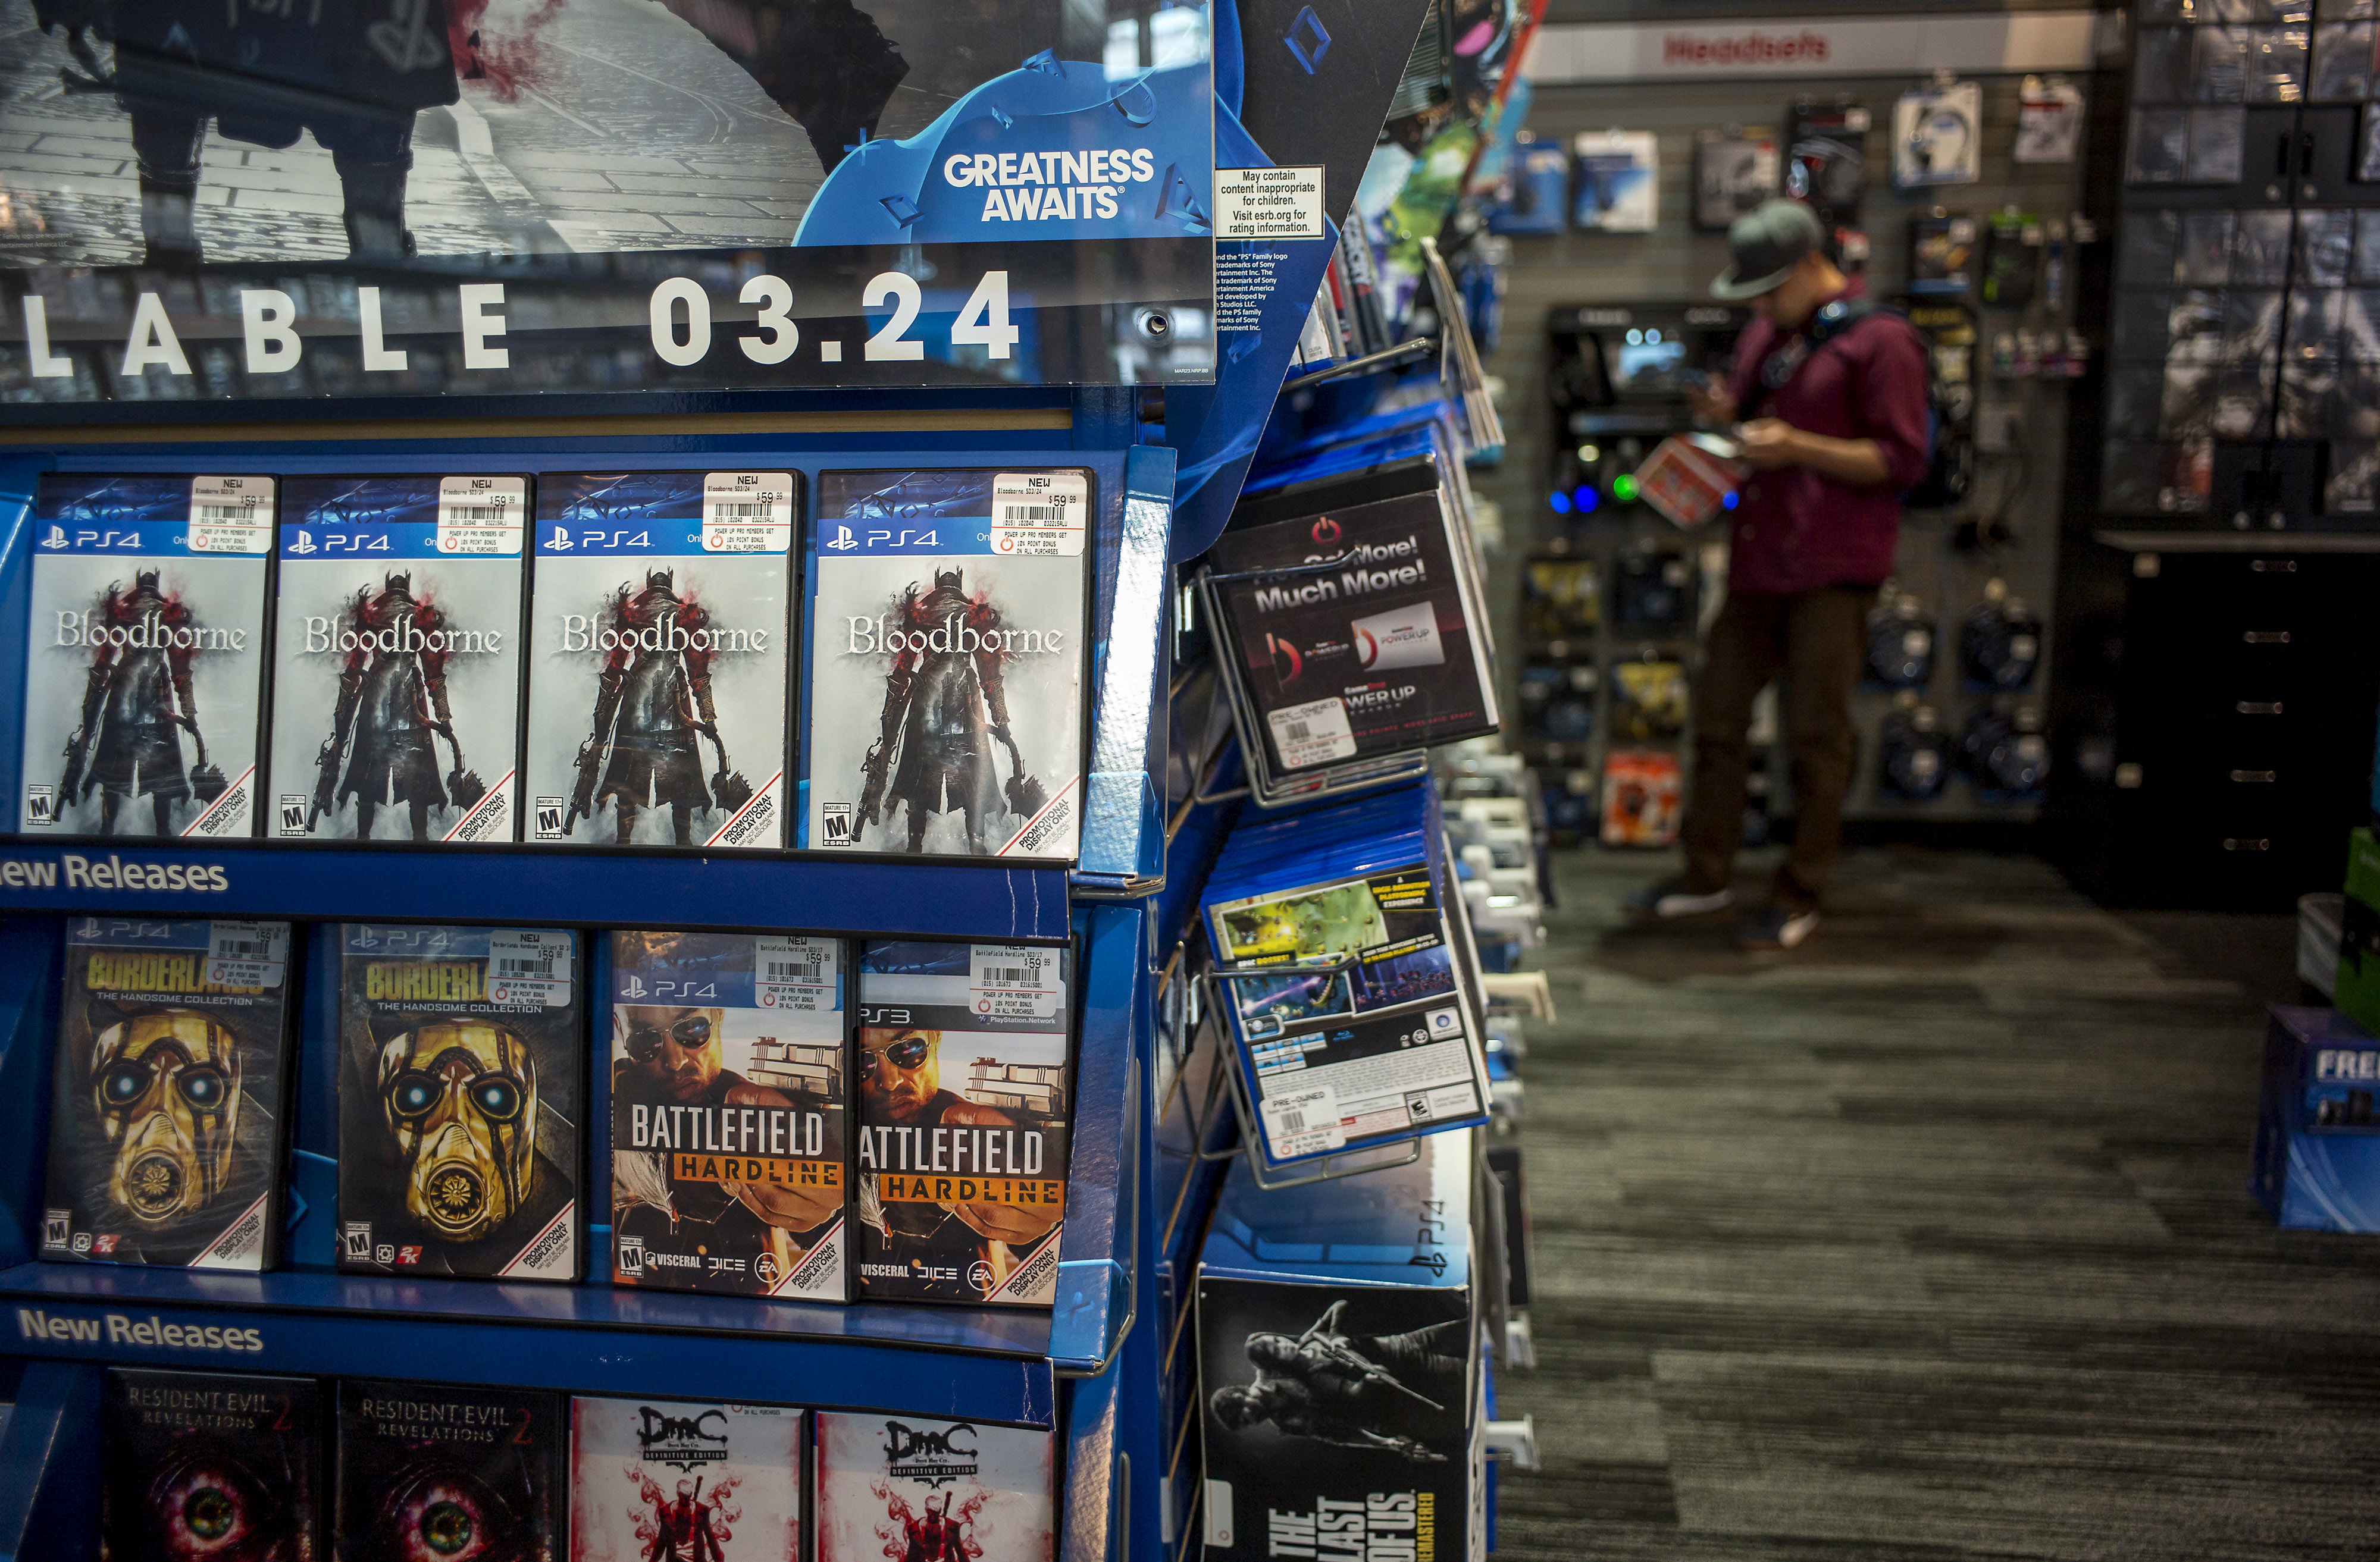 A shopper looks at a advertisement circular while shopping at a GameStop Corp. store in San Francisco, California, U.S. on Tuesday March 24, 2015.  GameStop Corp., is expected to release earnings figures on March 26. Photographer: David Paul Morris/Bloomberg